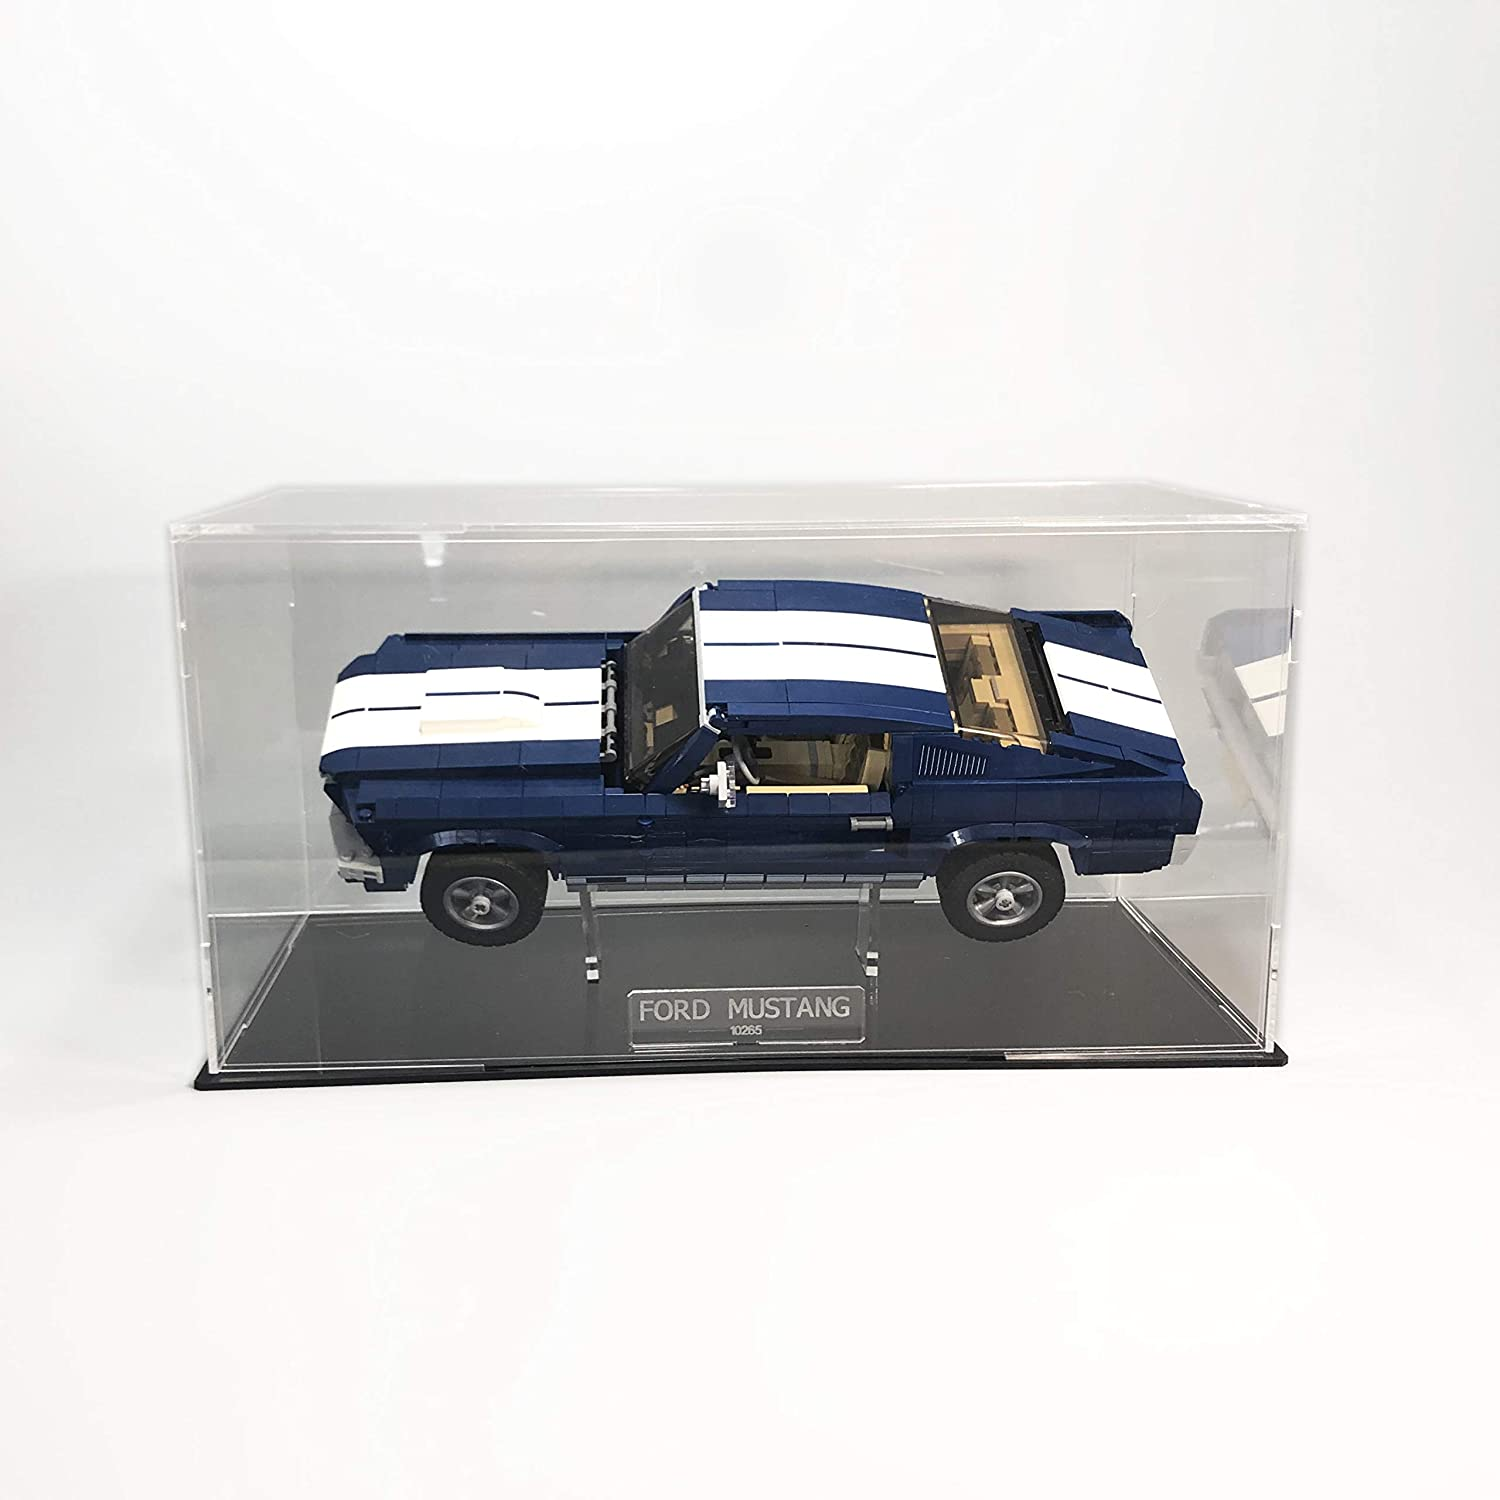 LASER FRAME Ford Mustang acrylic display case with internal sand for the LEGO model 10265